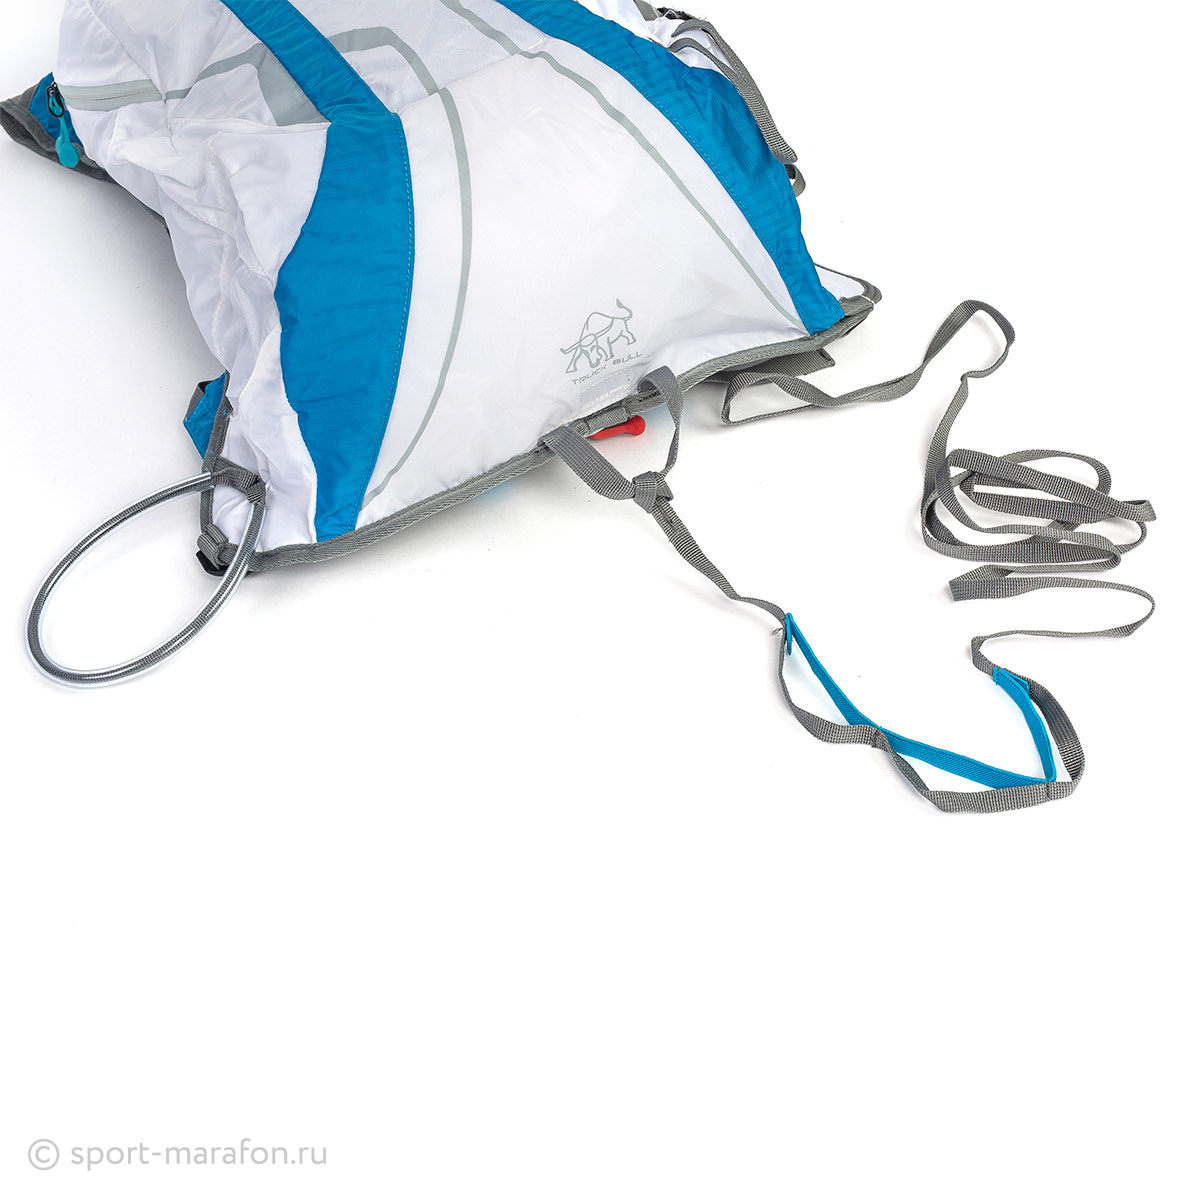 Рюкзак Camp Rapid 20 White/Light Blue - Фото 7 большая